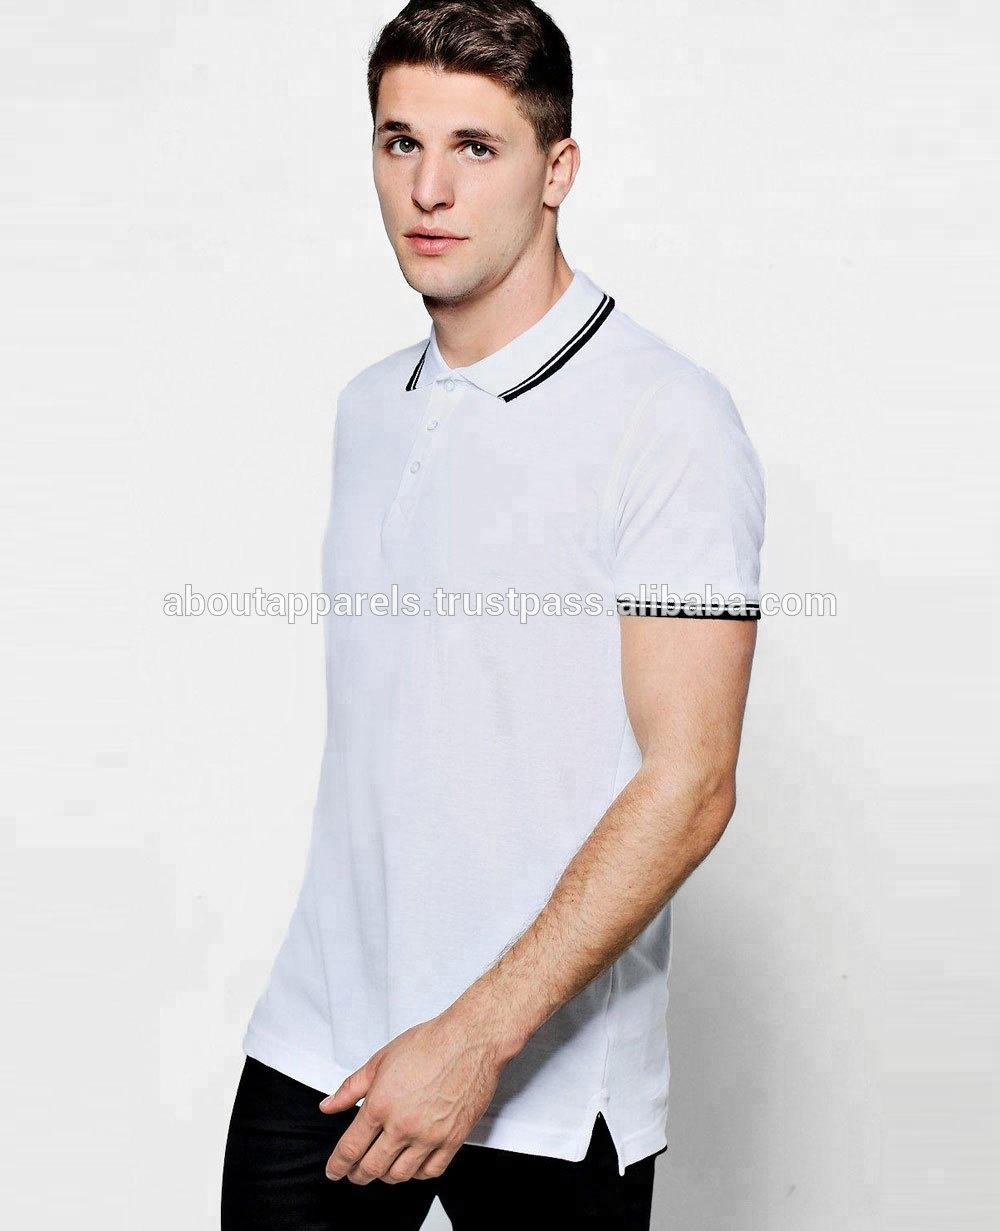 Factory direct wholesale 싼 polo shirts custom made 자 수 men polo t custom logo/Short Sleeve 피케 Polo 흘린